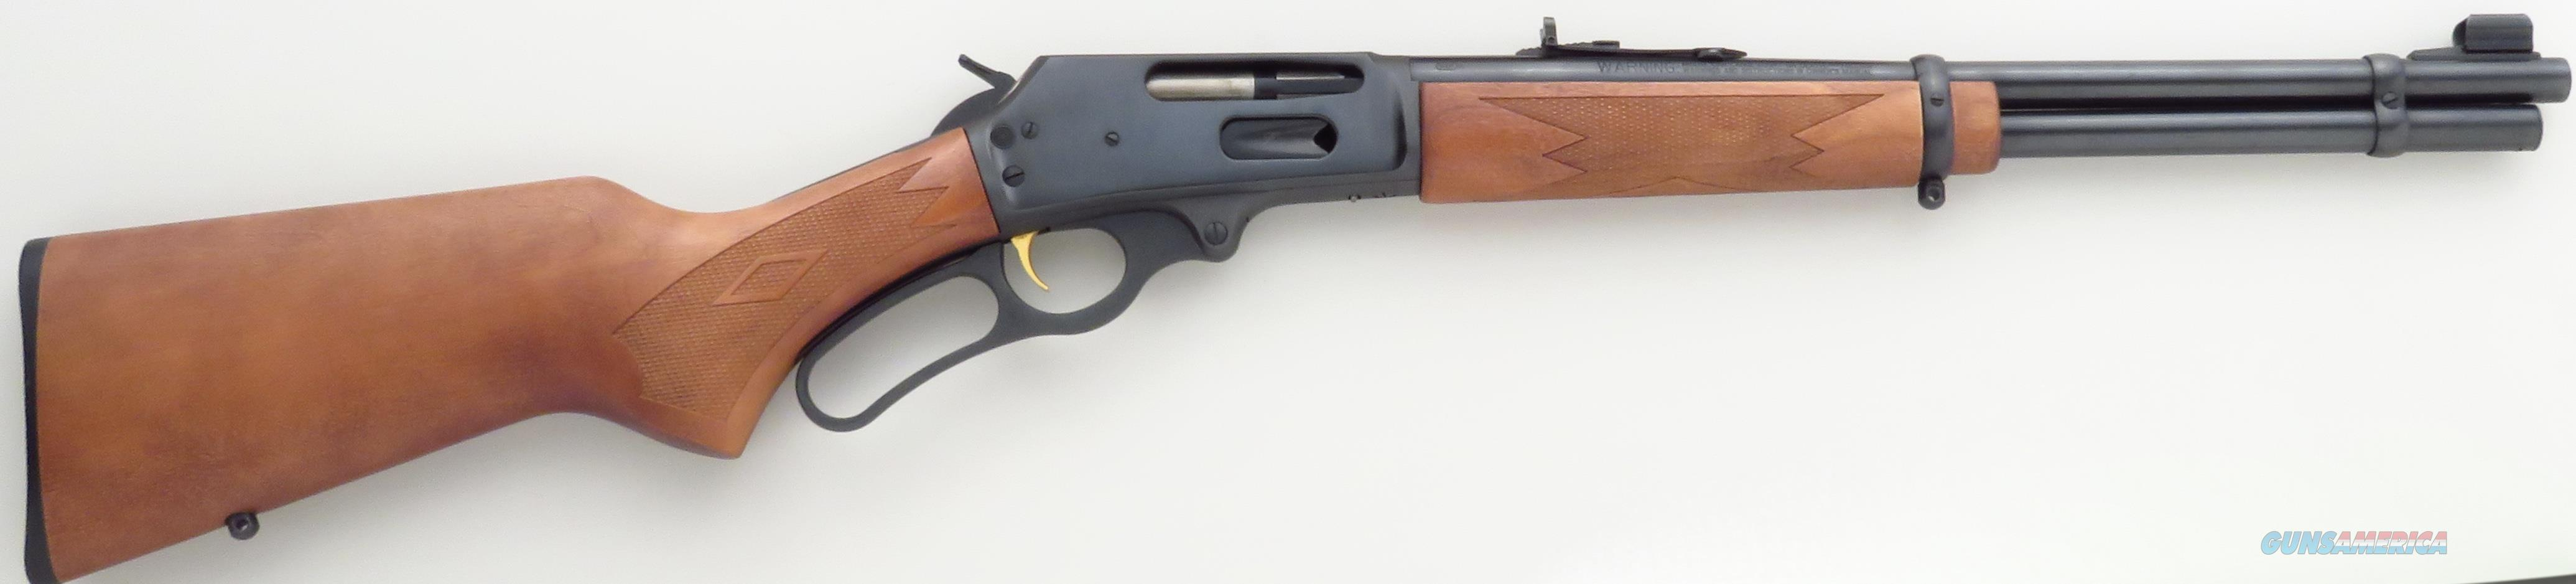 Marlin 336 serial number dating after 2011 7